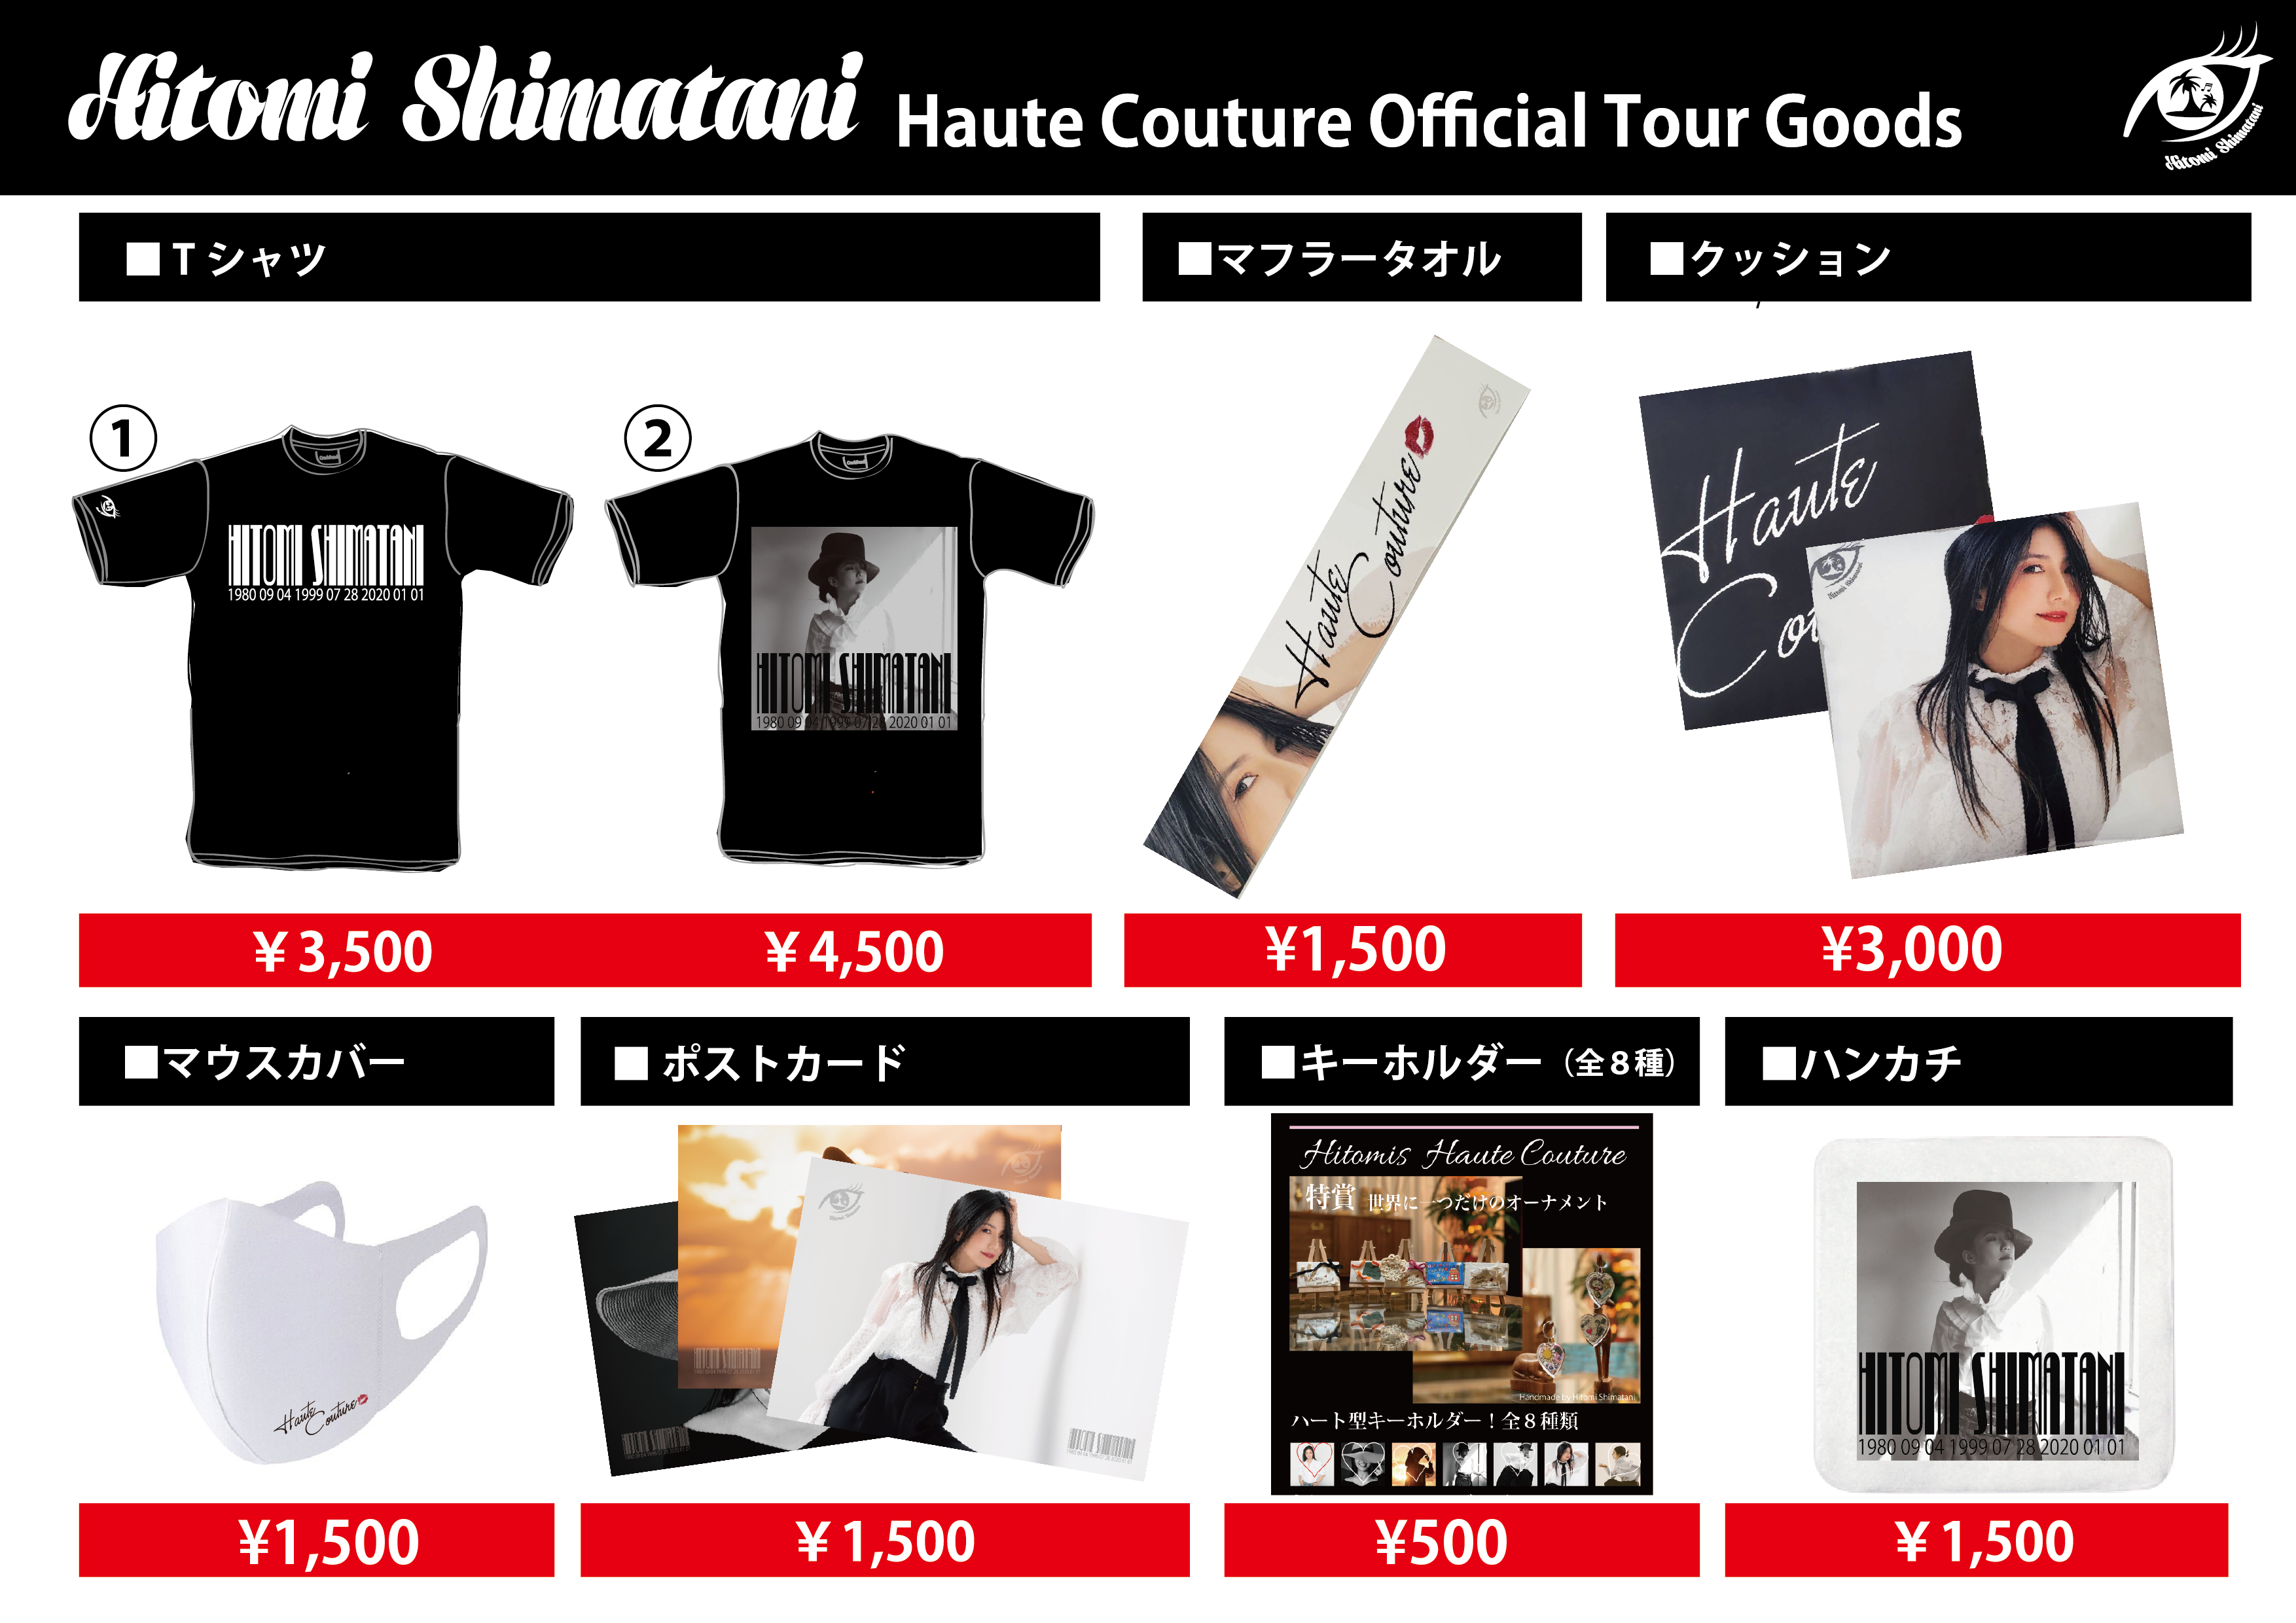 Haute Couture Official Tour Goods NEW ITEM